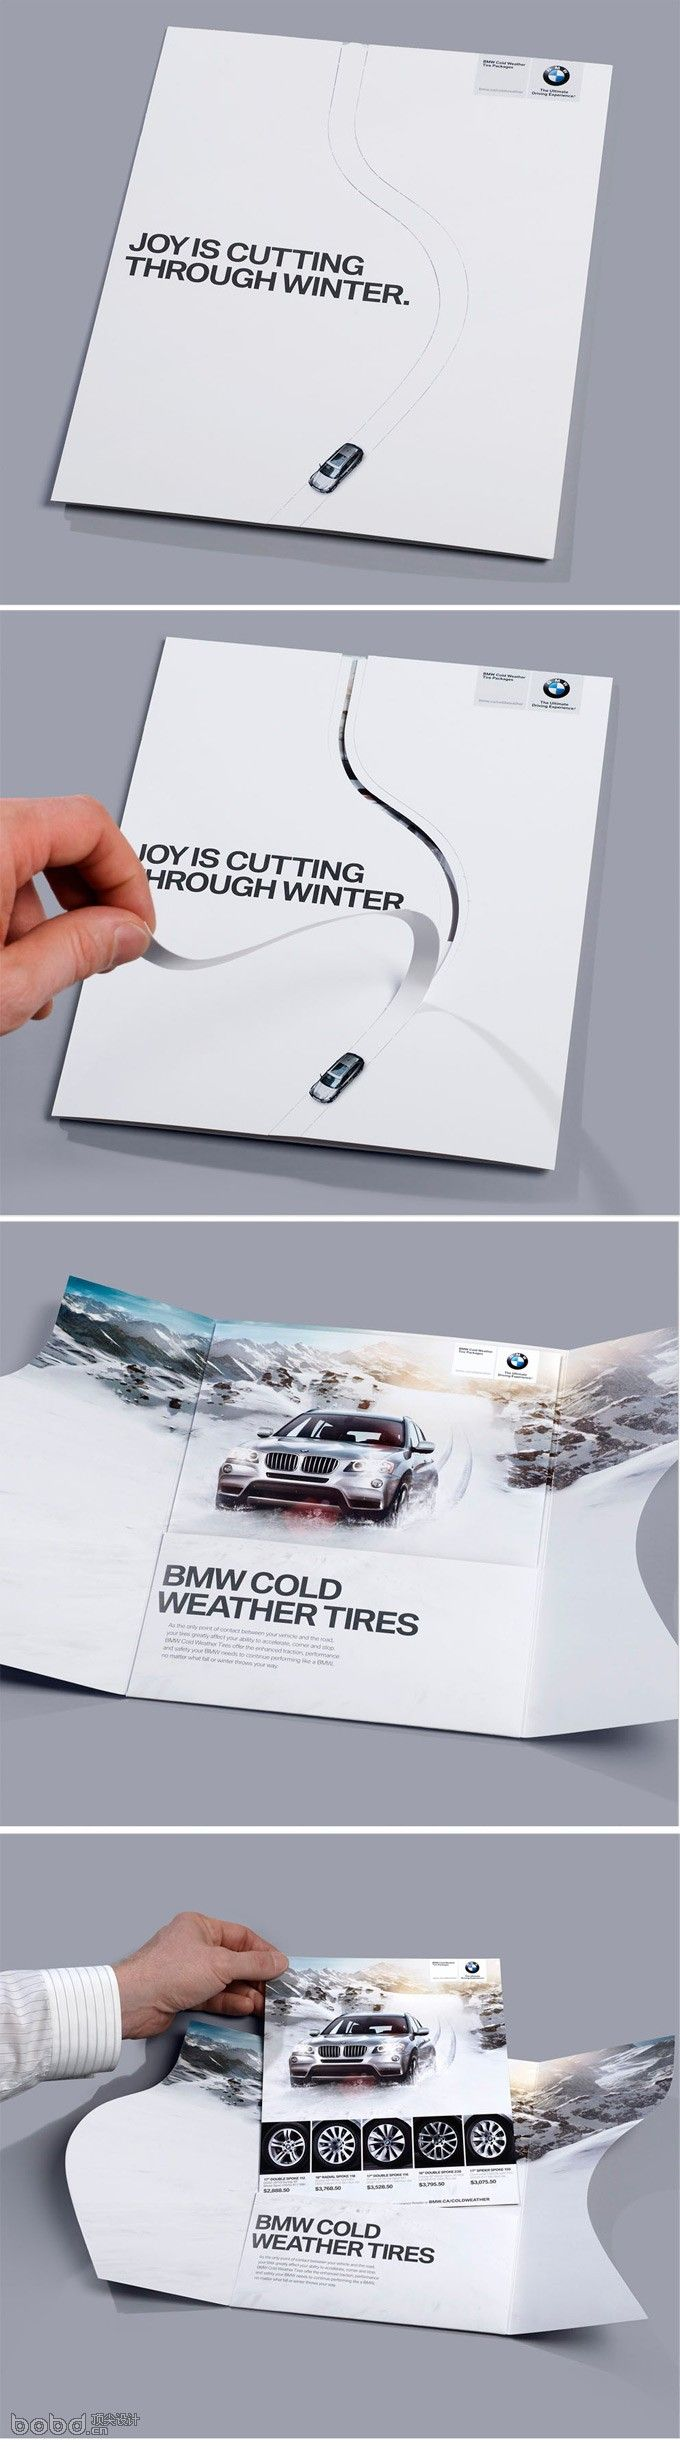 BMW. I like this packaging that BMW created. Although the inside layout is quite static and plain as their common layouts, the interactive cover intrigues the viewer to open the packager to see what's inside. The illustration used is very bold and eye-catching.